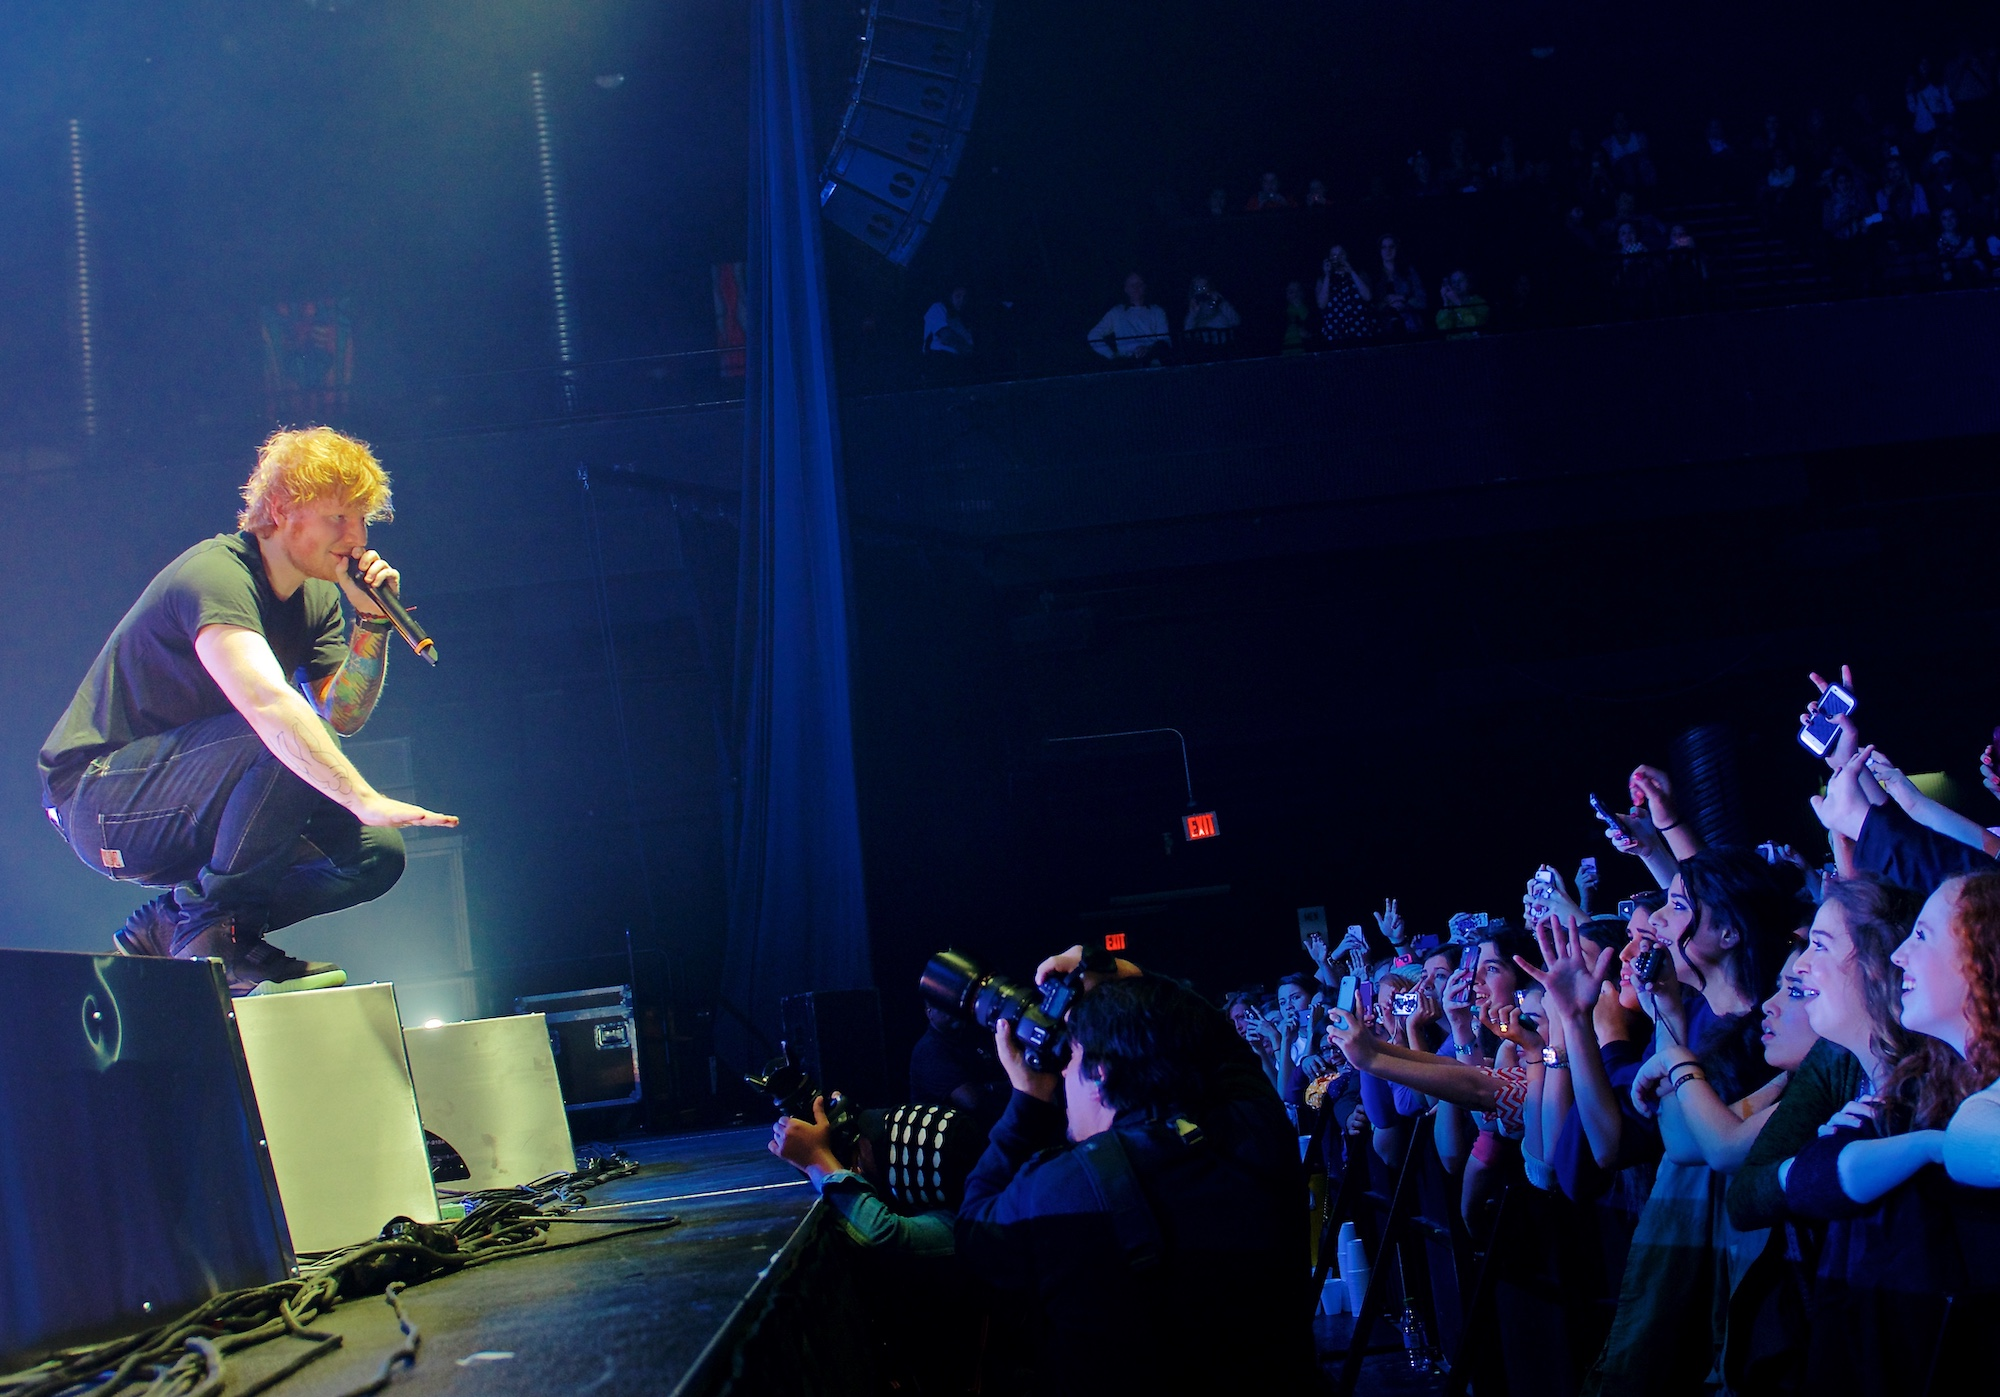 Ed Sheeran performs before a sold-out crowd at Bayou Music Center, Houston, TX. January 17, 2013